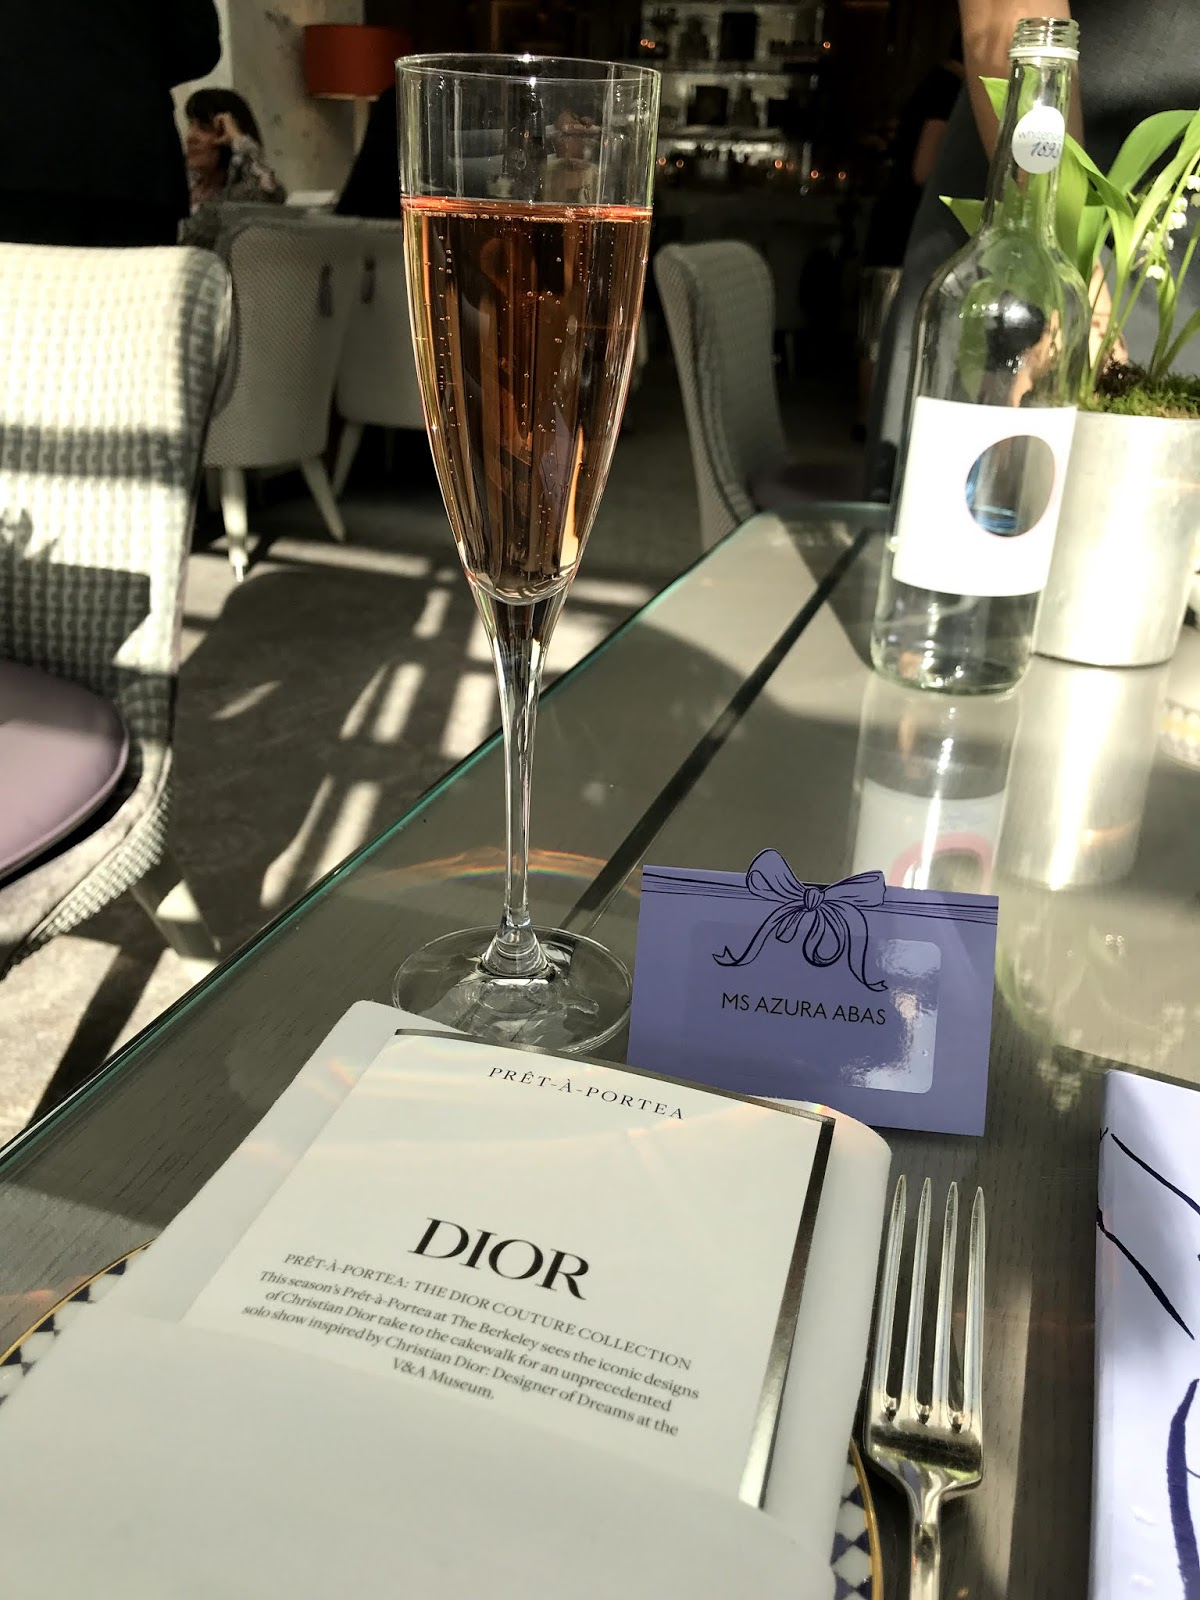 Dior Afternoon Tea at The Berkeley